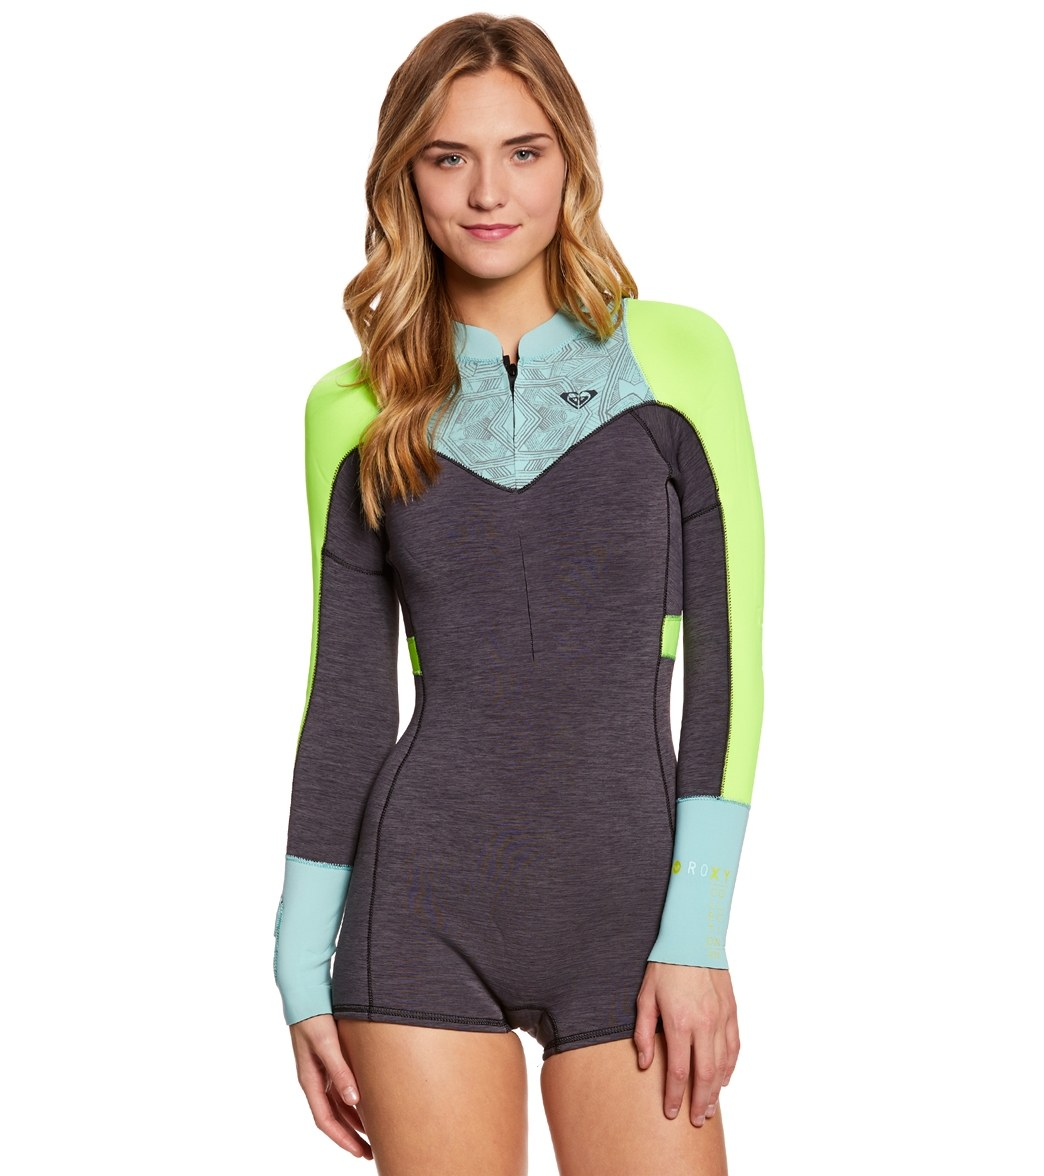 aead59a281 Roxy Women s 2MM XY Long Sleeve Front Zip Spring Suit Wetsuit at ...